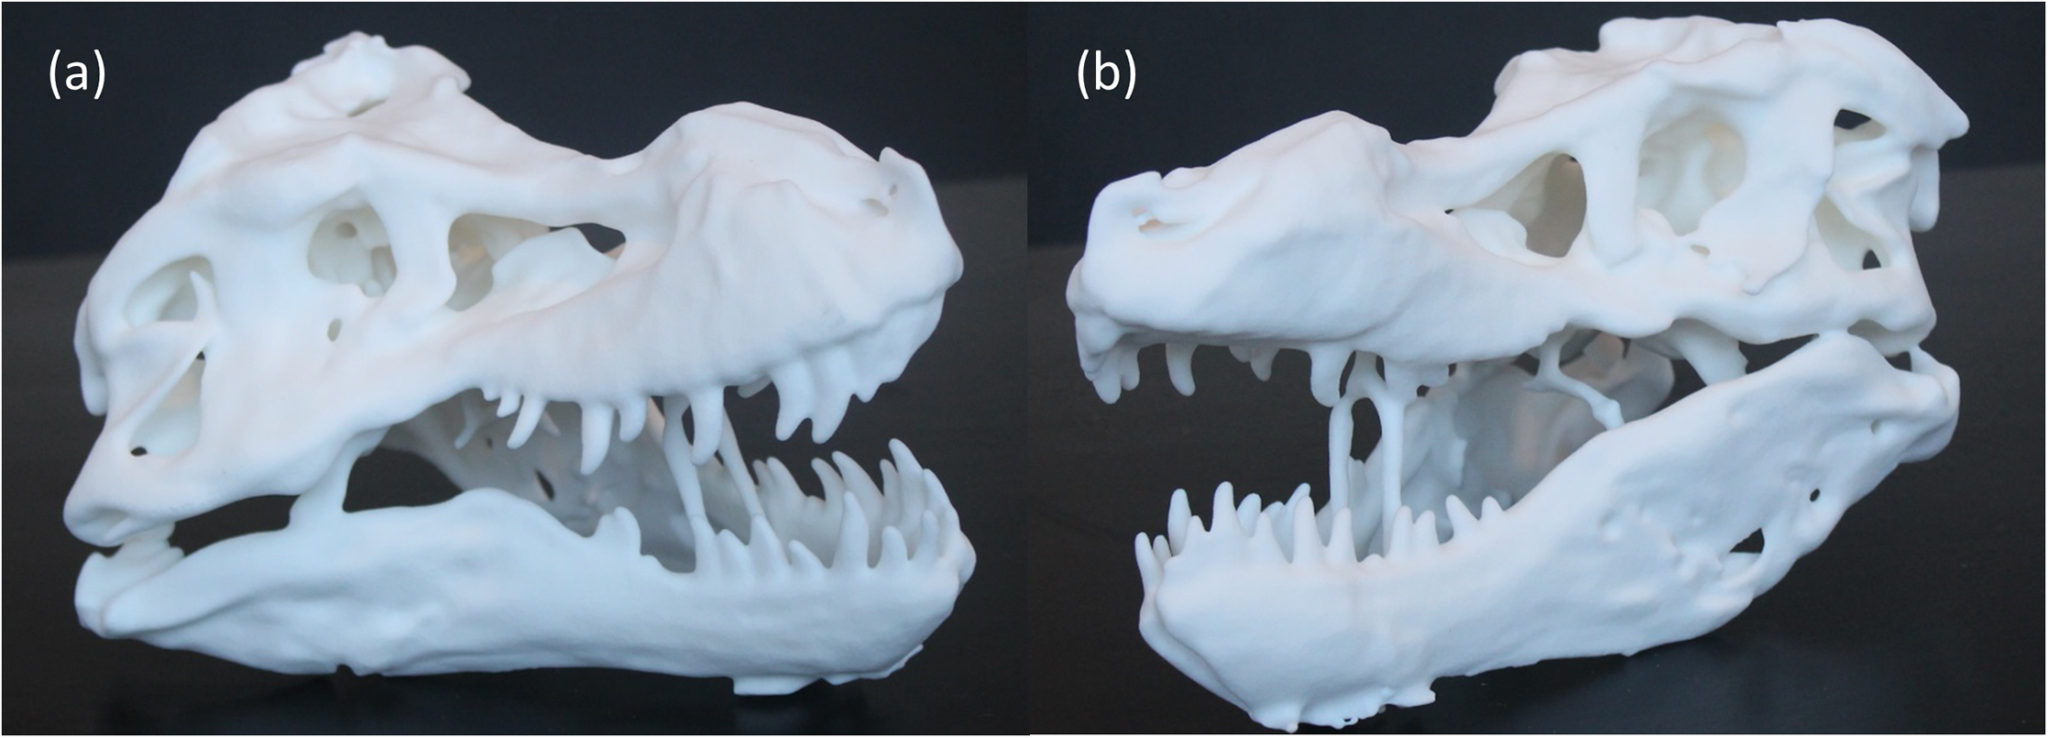 The 3D printed replicas which are about an eight of the size at 17.6 cm long compared to the actual 1.4 m. Image via PLOS ONE.